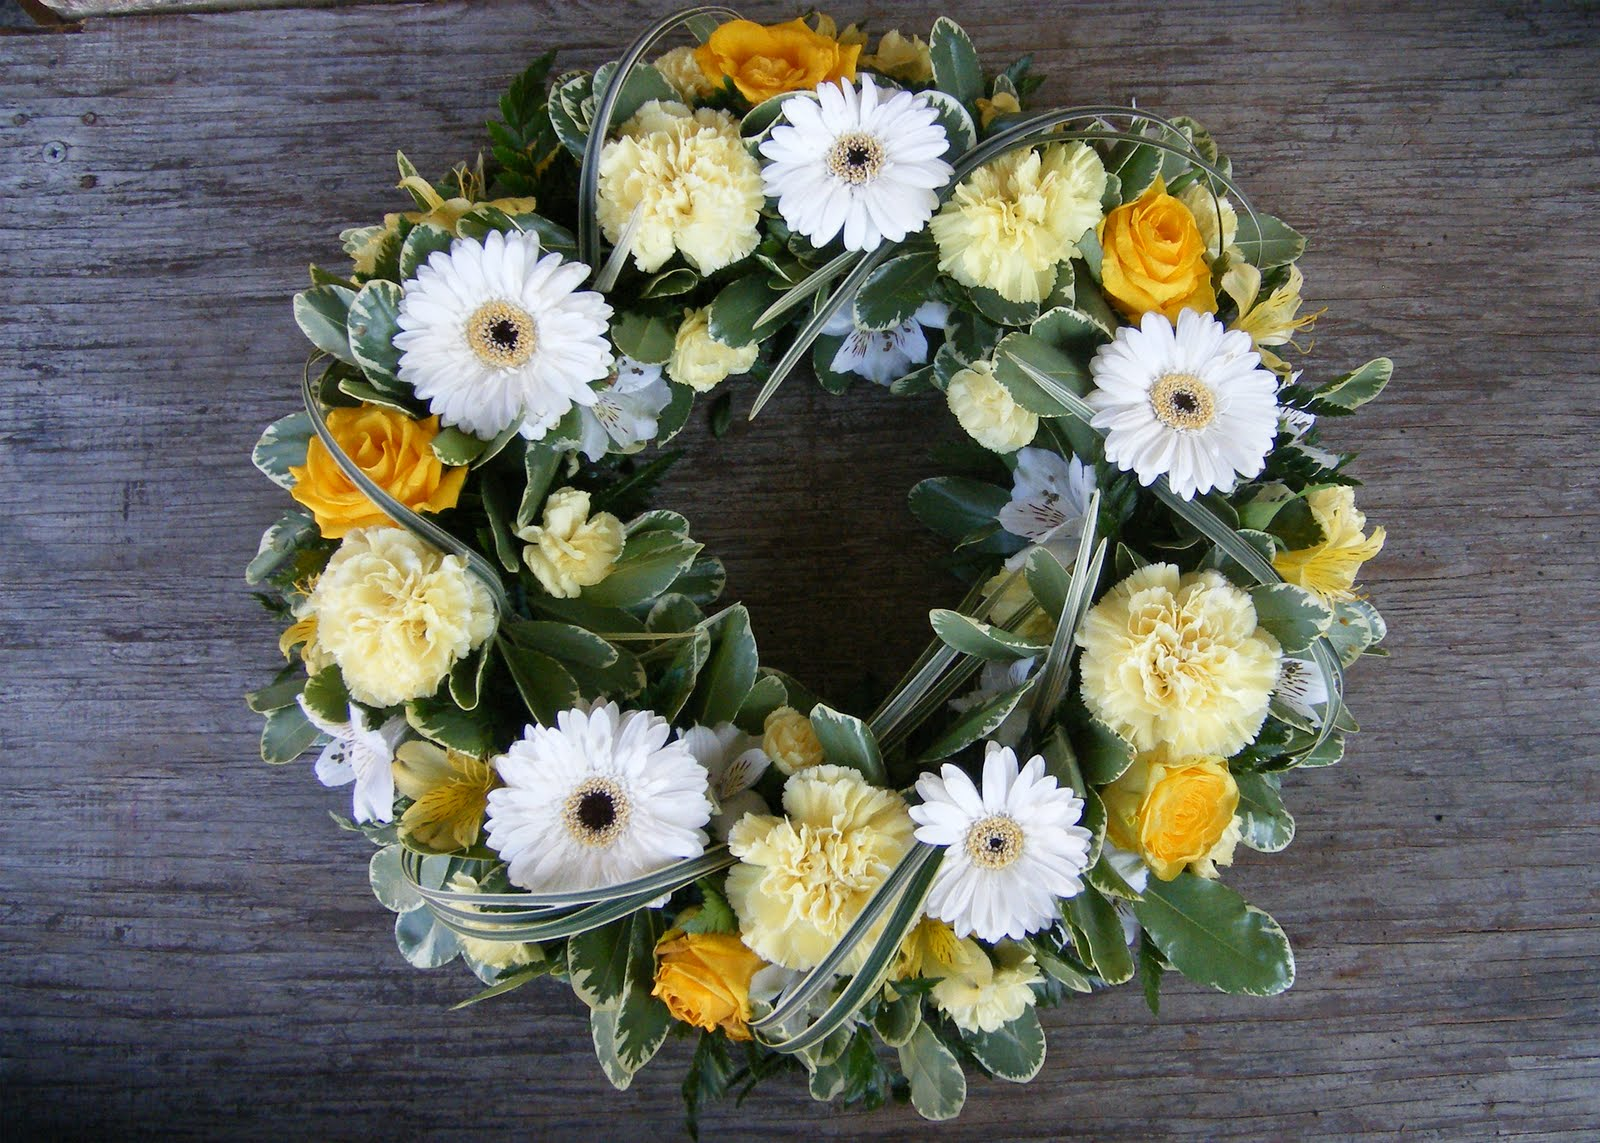 Tippetts florist flowers oadby july 2010 yellow and white wreath izmirmasajfo